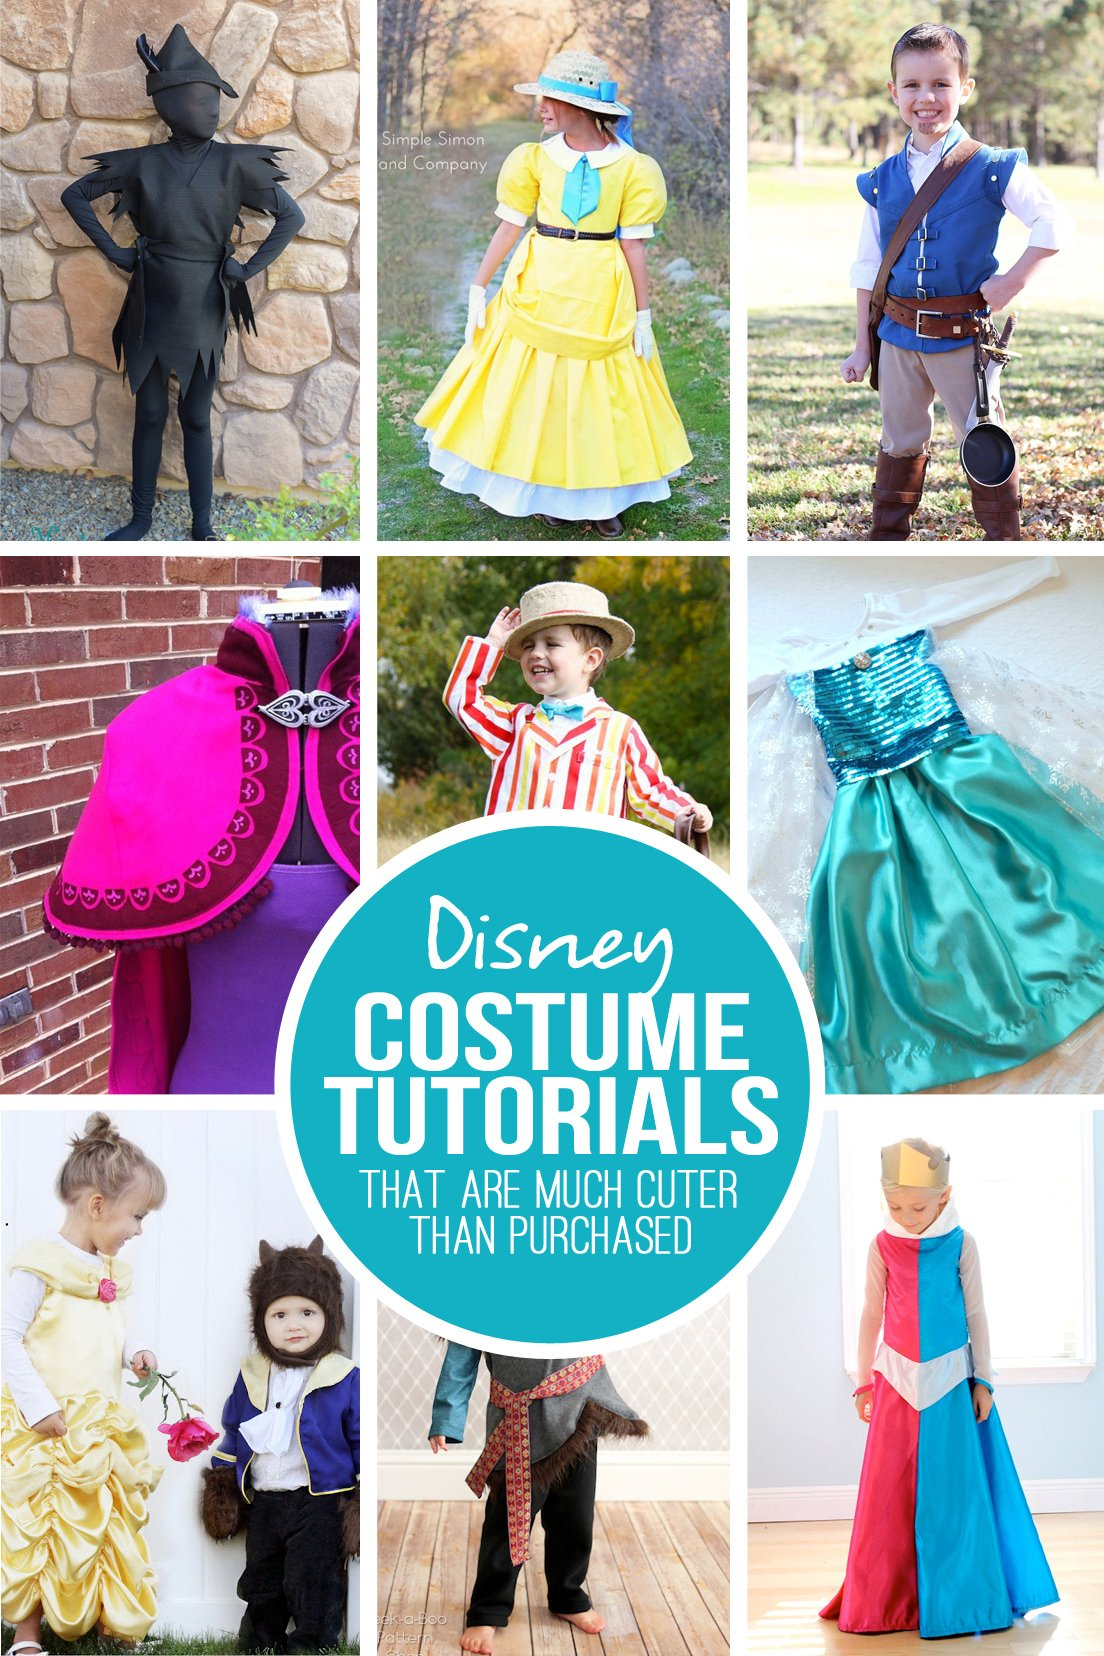 28 diy disney costume tutorials…that are much cuter than purchased!